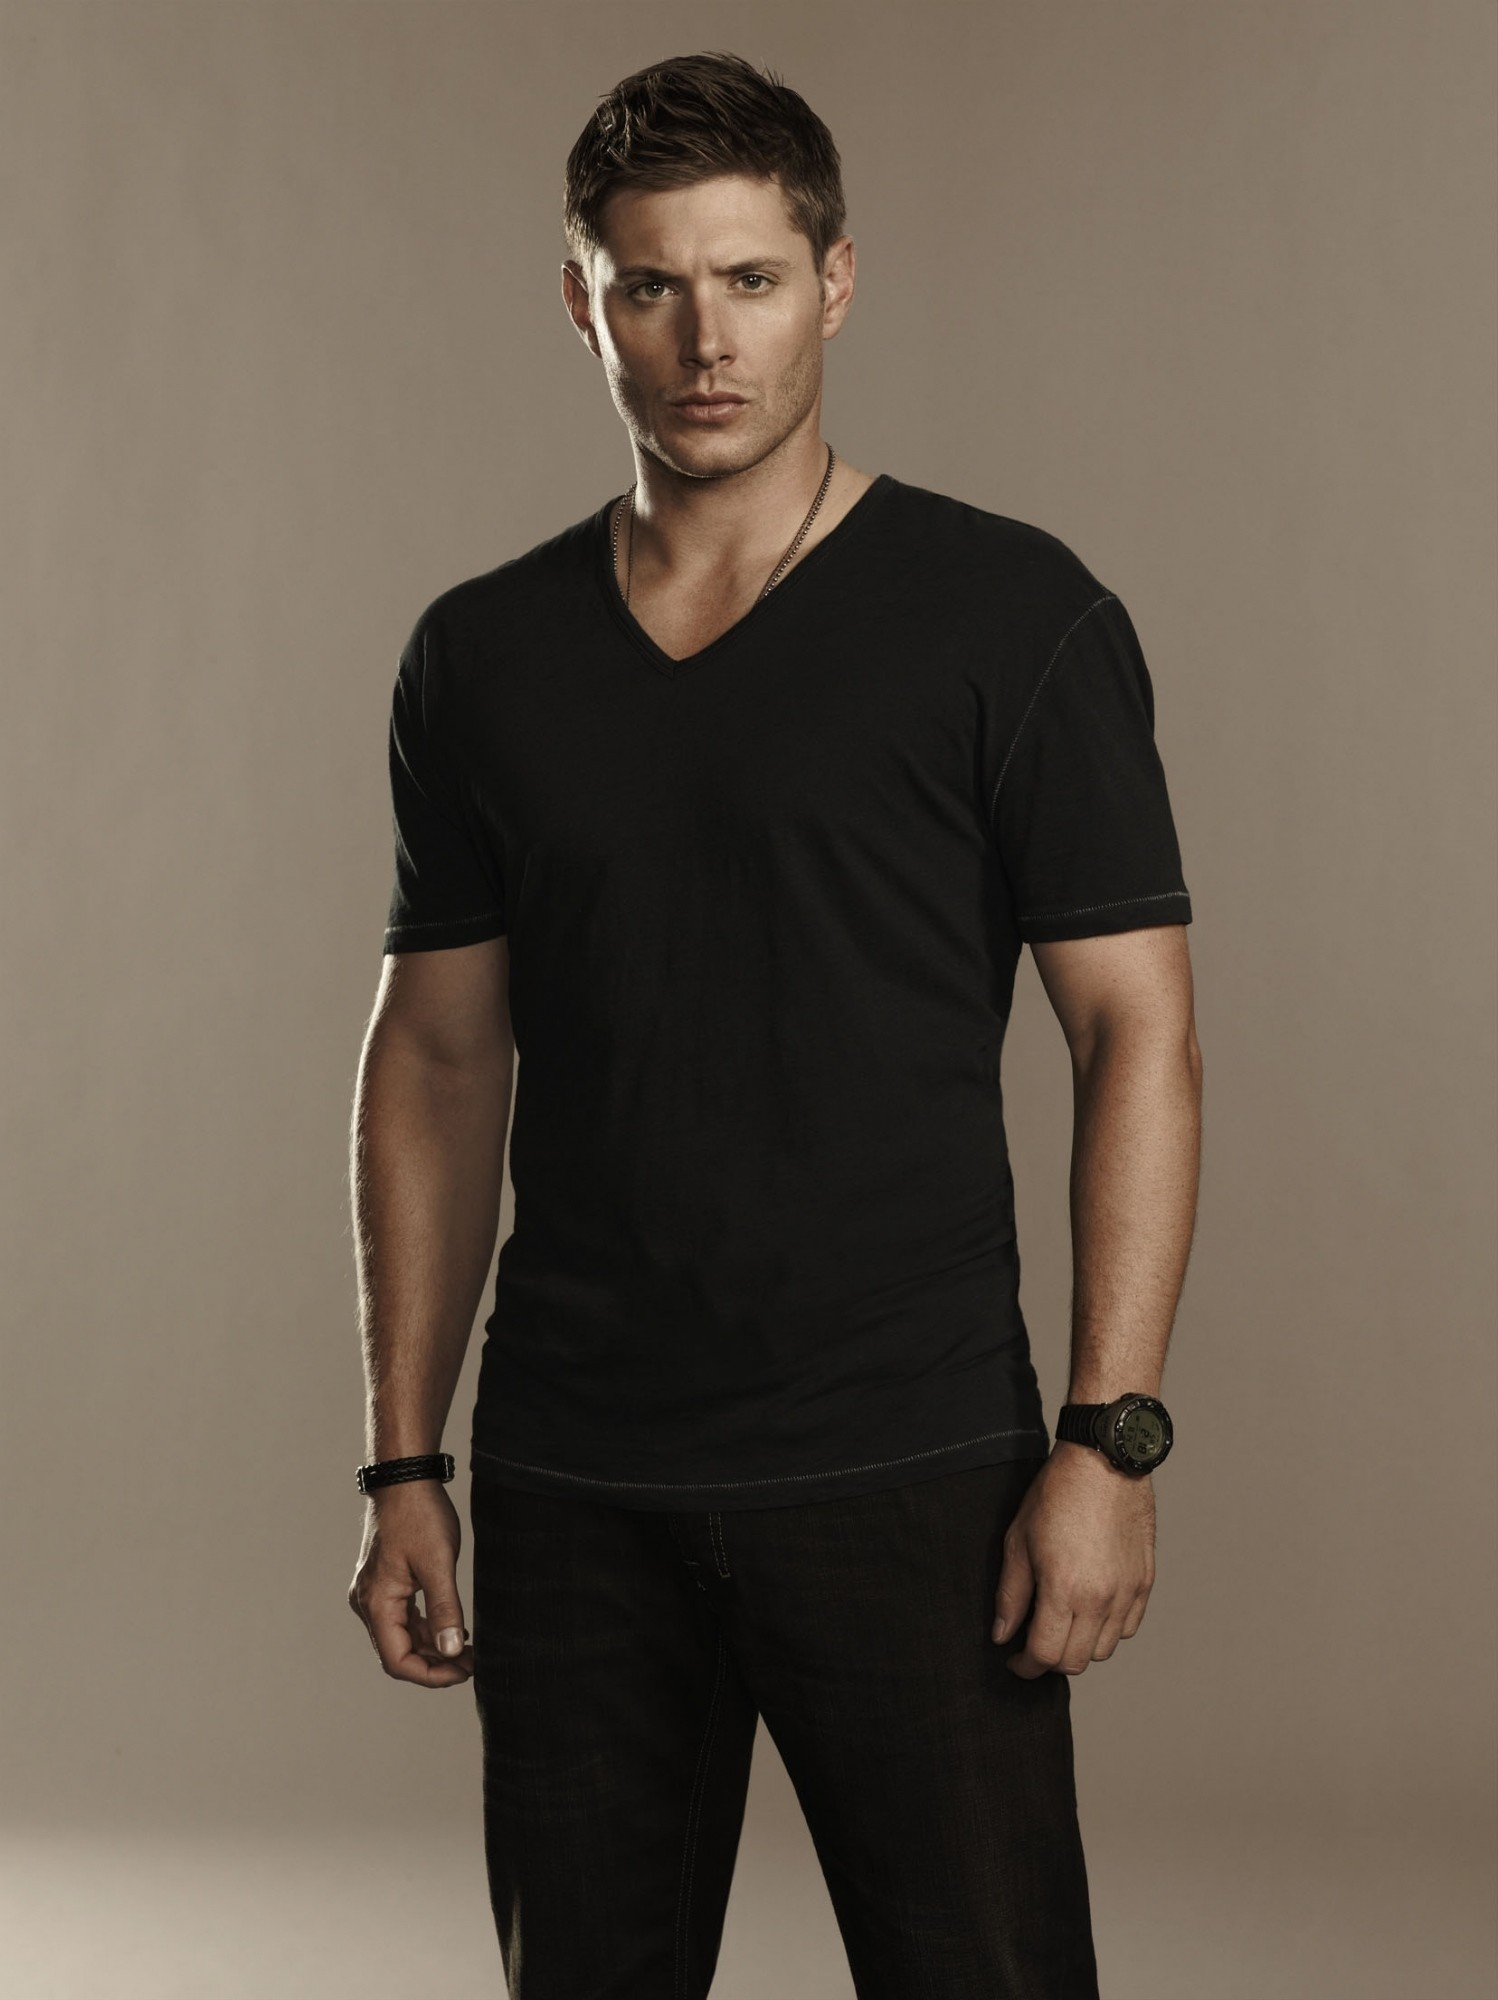 1498x2000 21 Exceptionally Sexy Pictures of Jensen Ackles